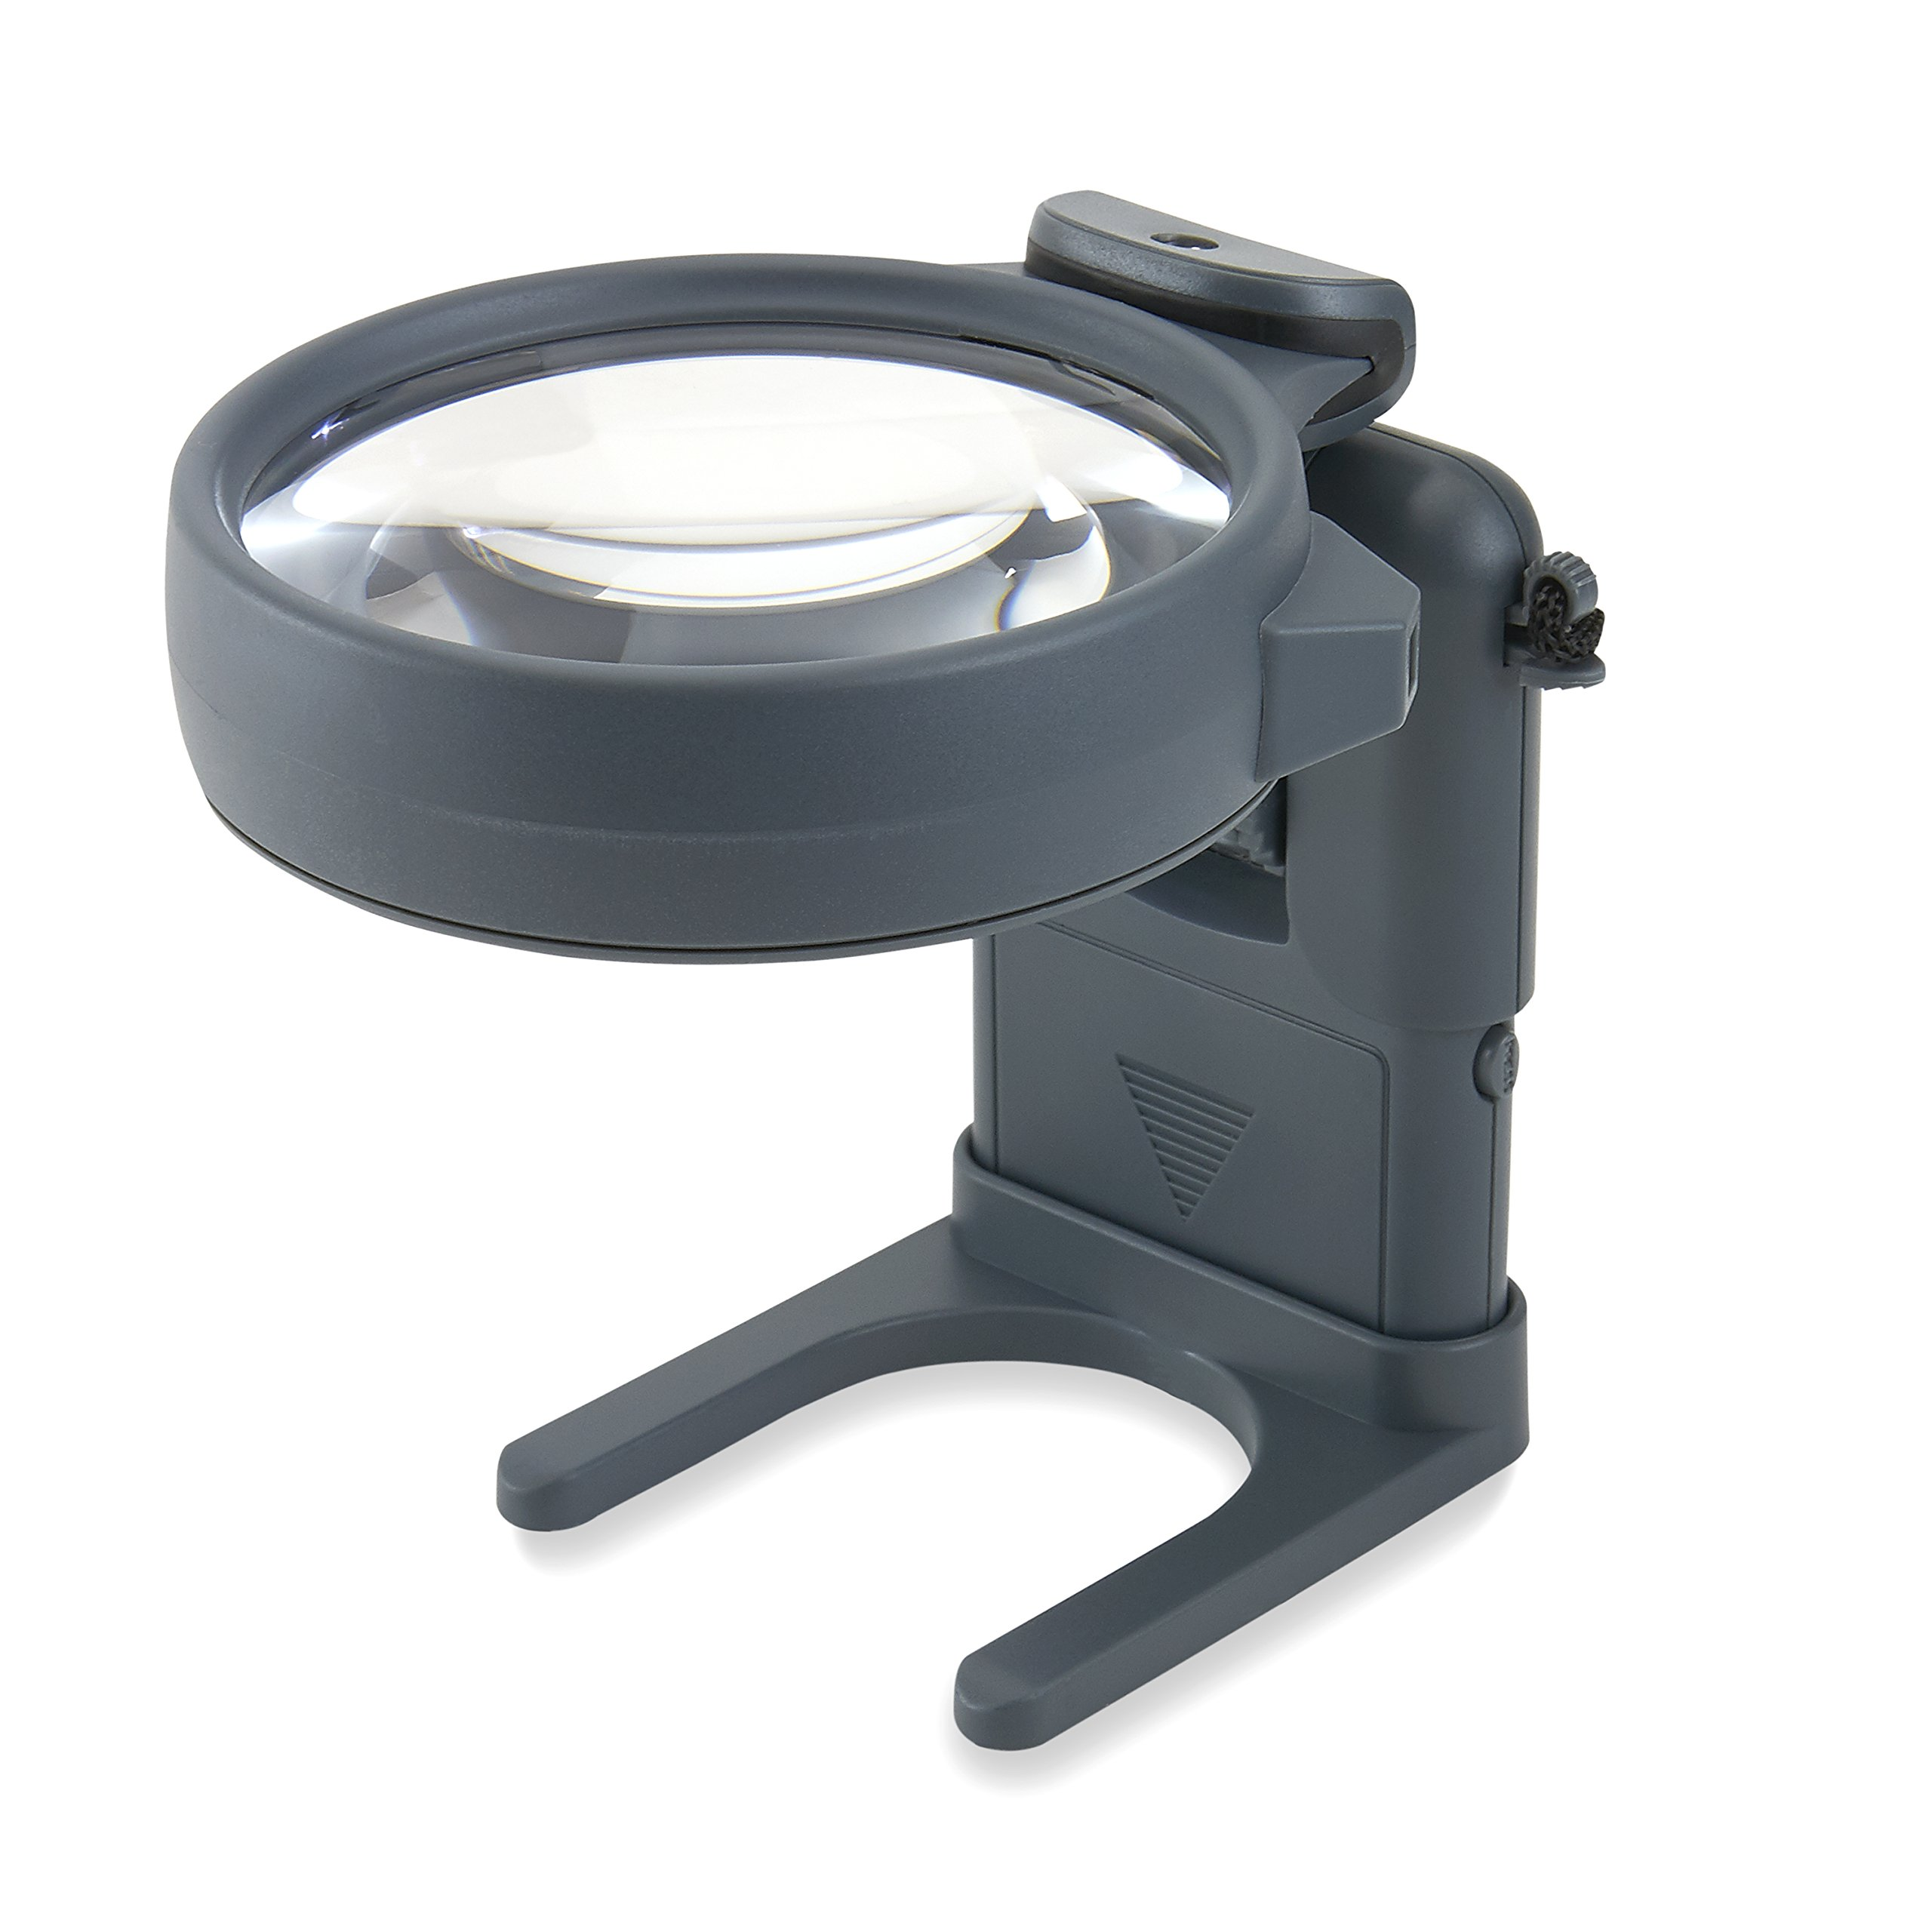 Carson 3-in-1 LED Lighted Magnifying Glass (HM-30) by Carson (Image #6)